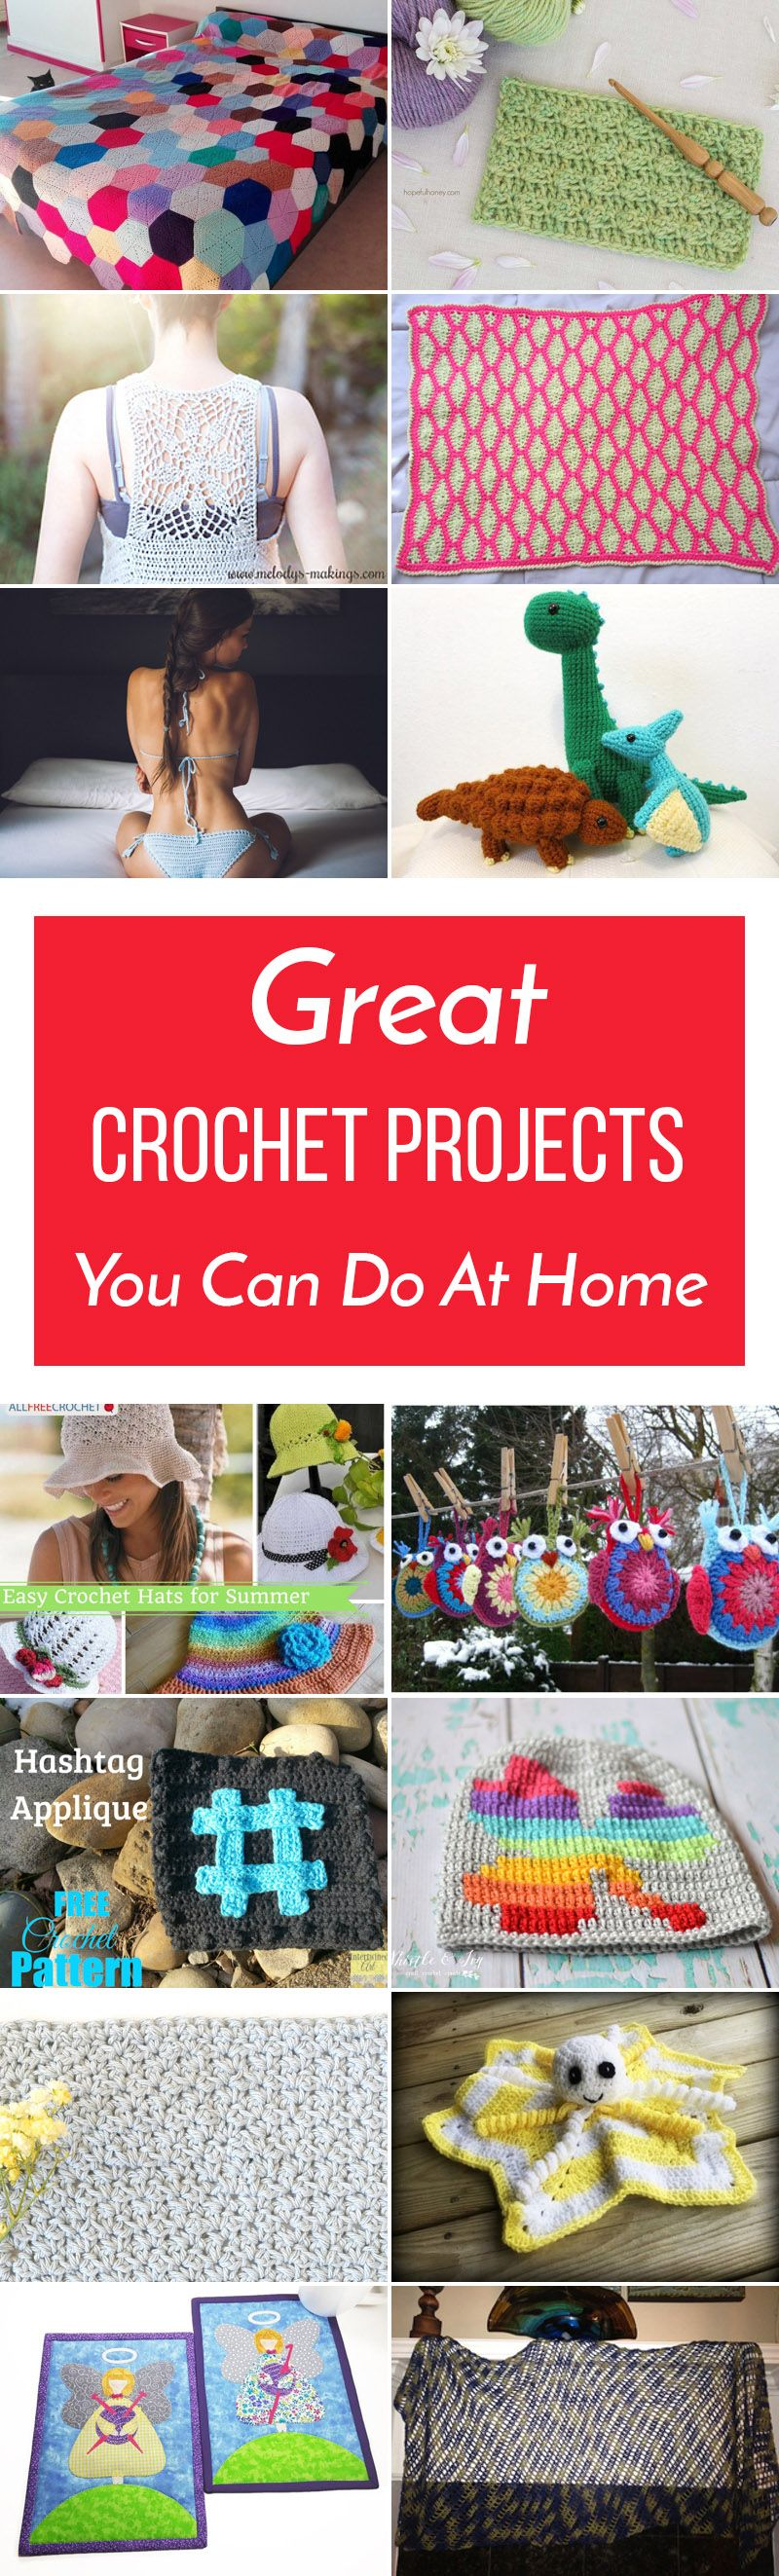 26 Great Crochet Projects You Can Do At Home